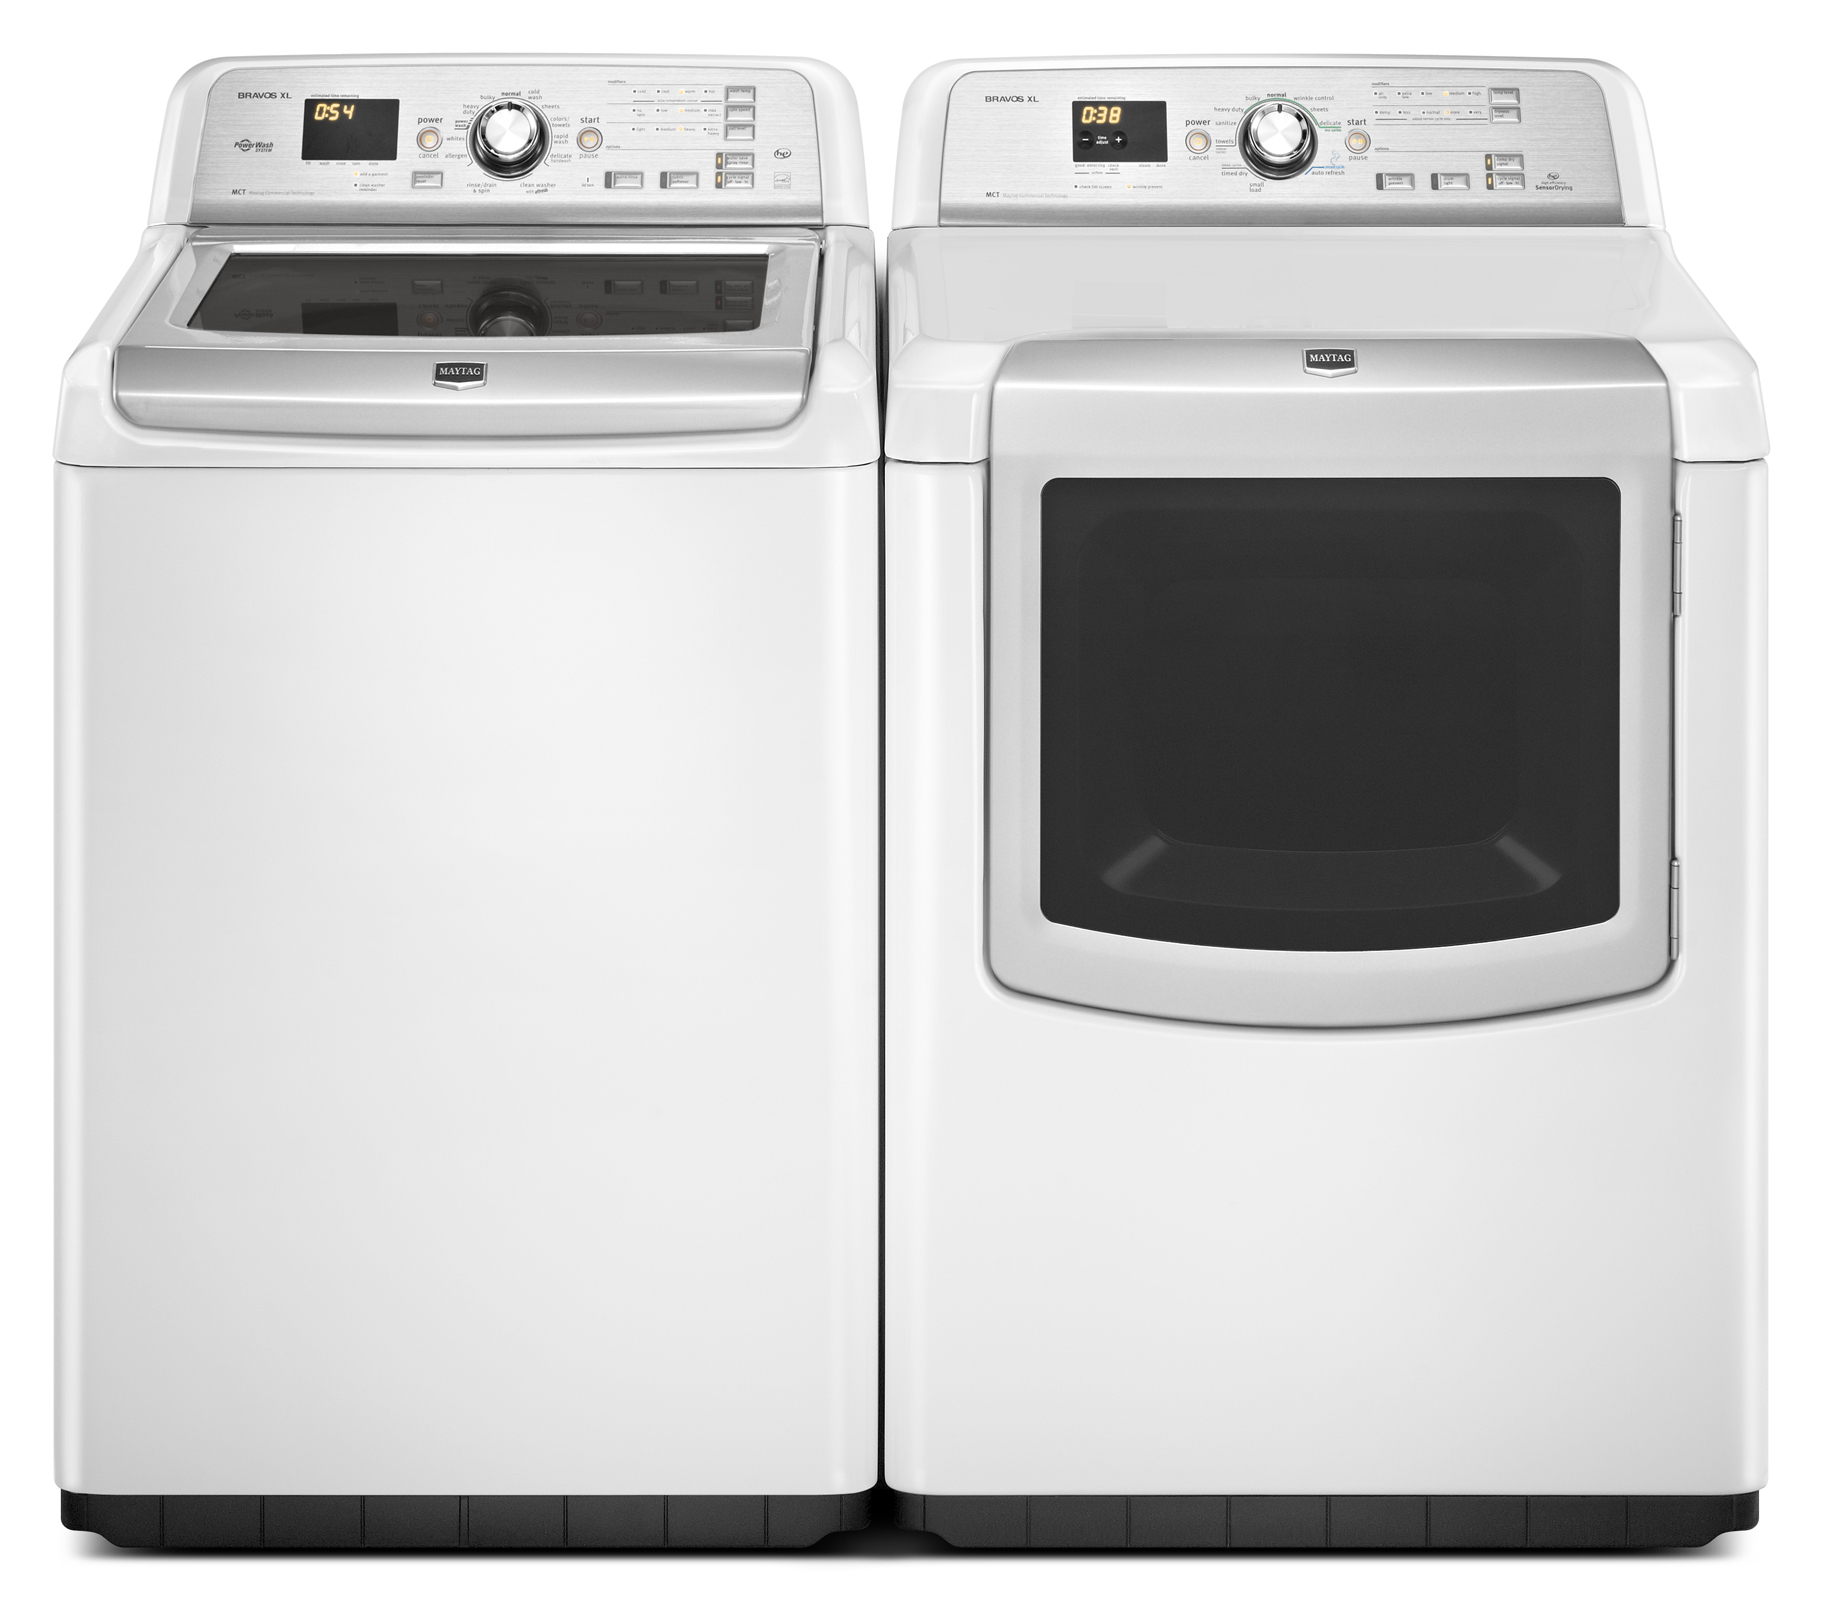 Maytag 7.3 cu. ft. Bravos XL® Electric Dryer w/ Sanitize Cycle - White